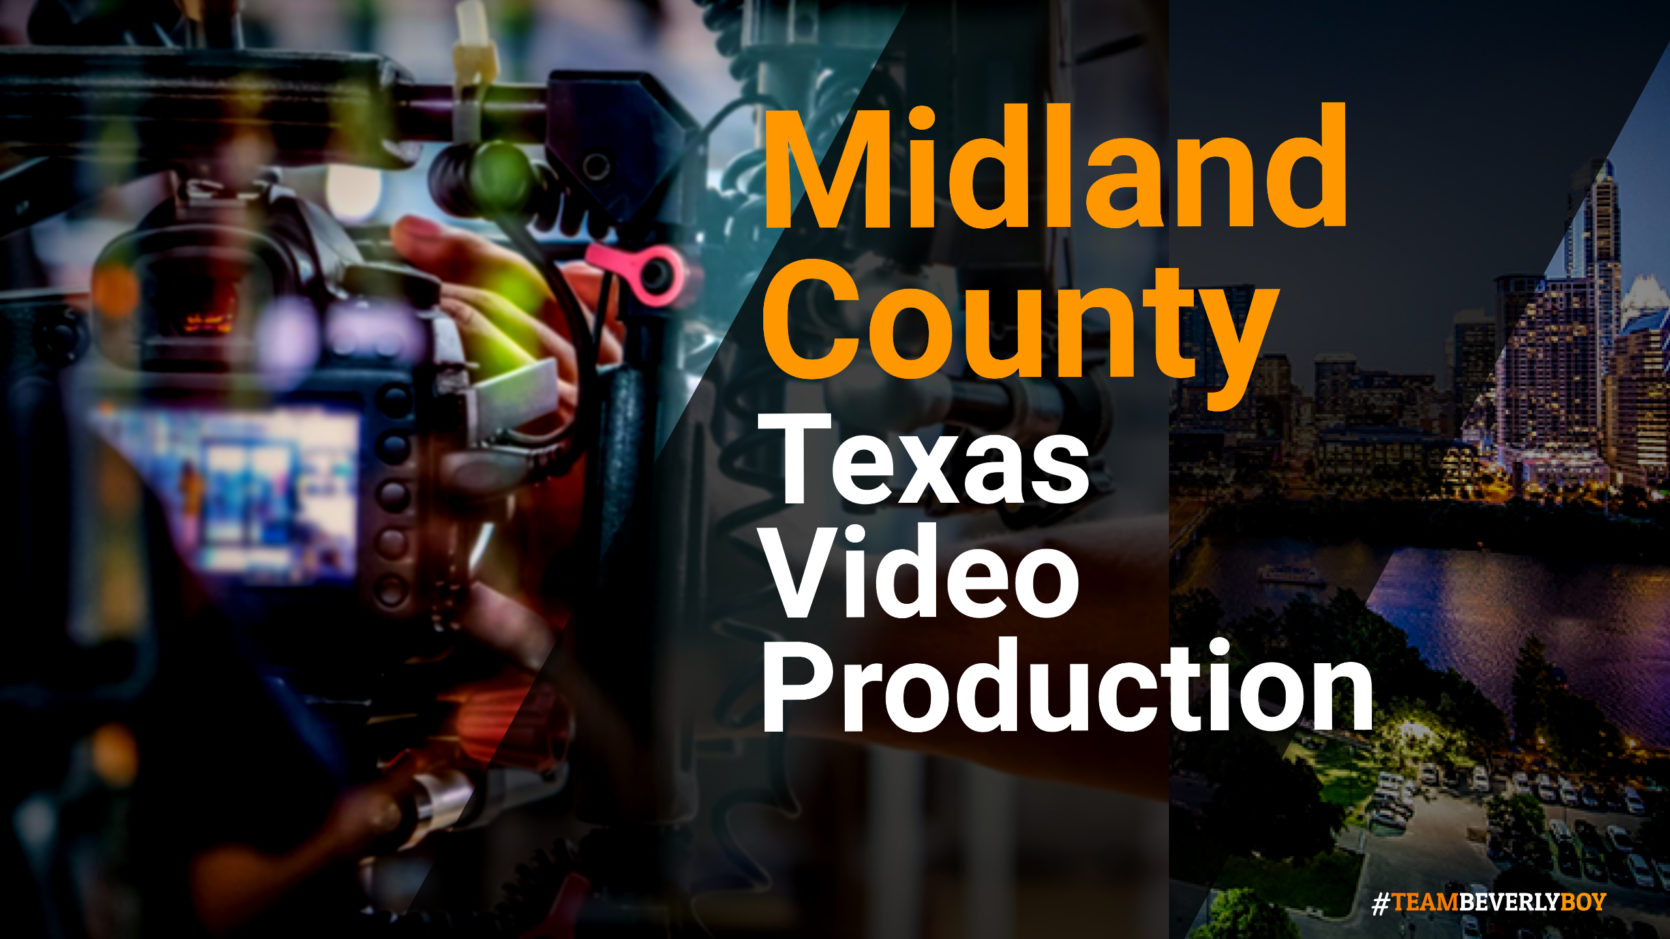 Midland County TX Video Production